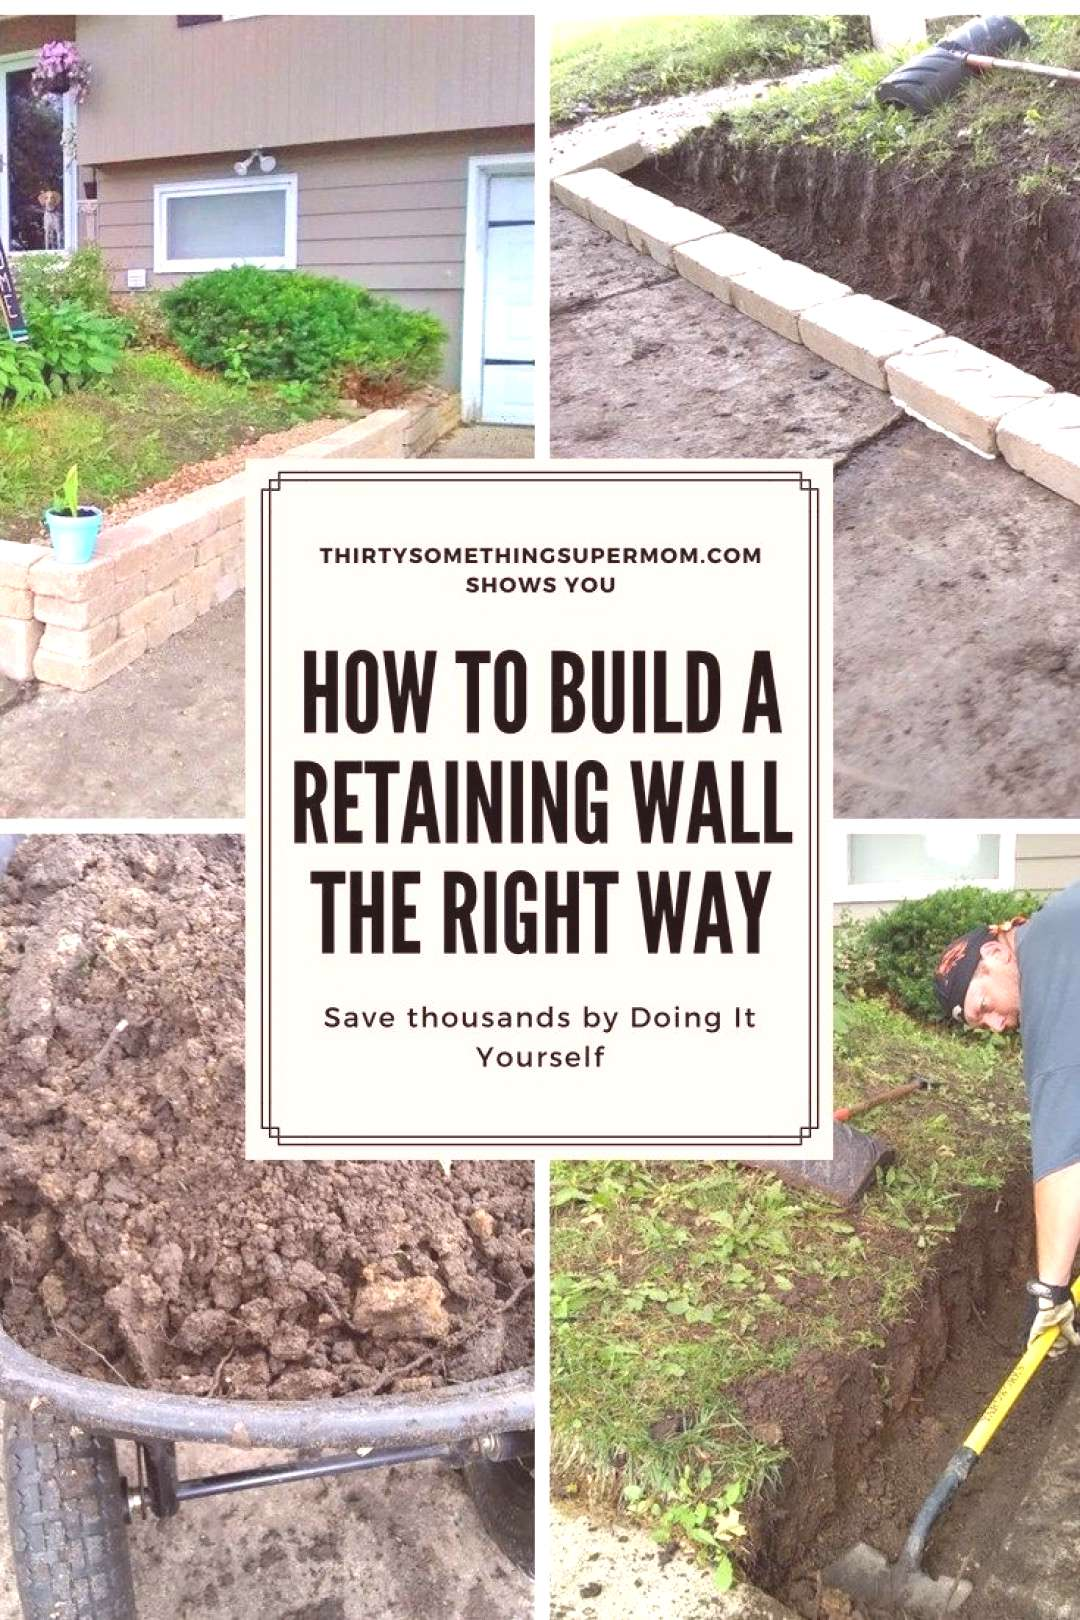 How to Build a Retaining Wall the Right Way - ThirtySomethingSuperMom